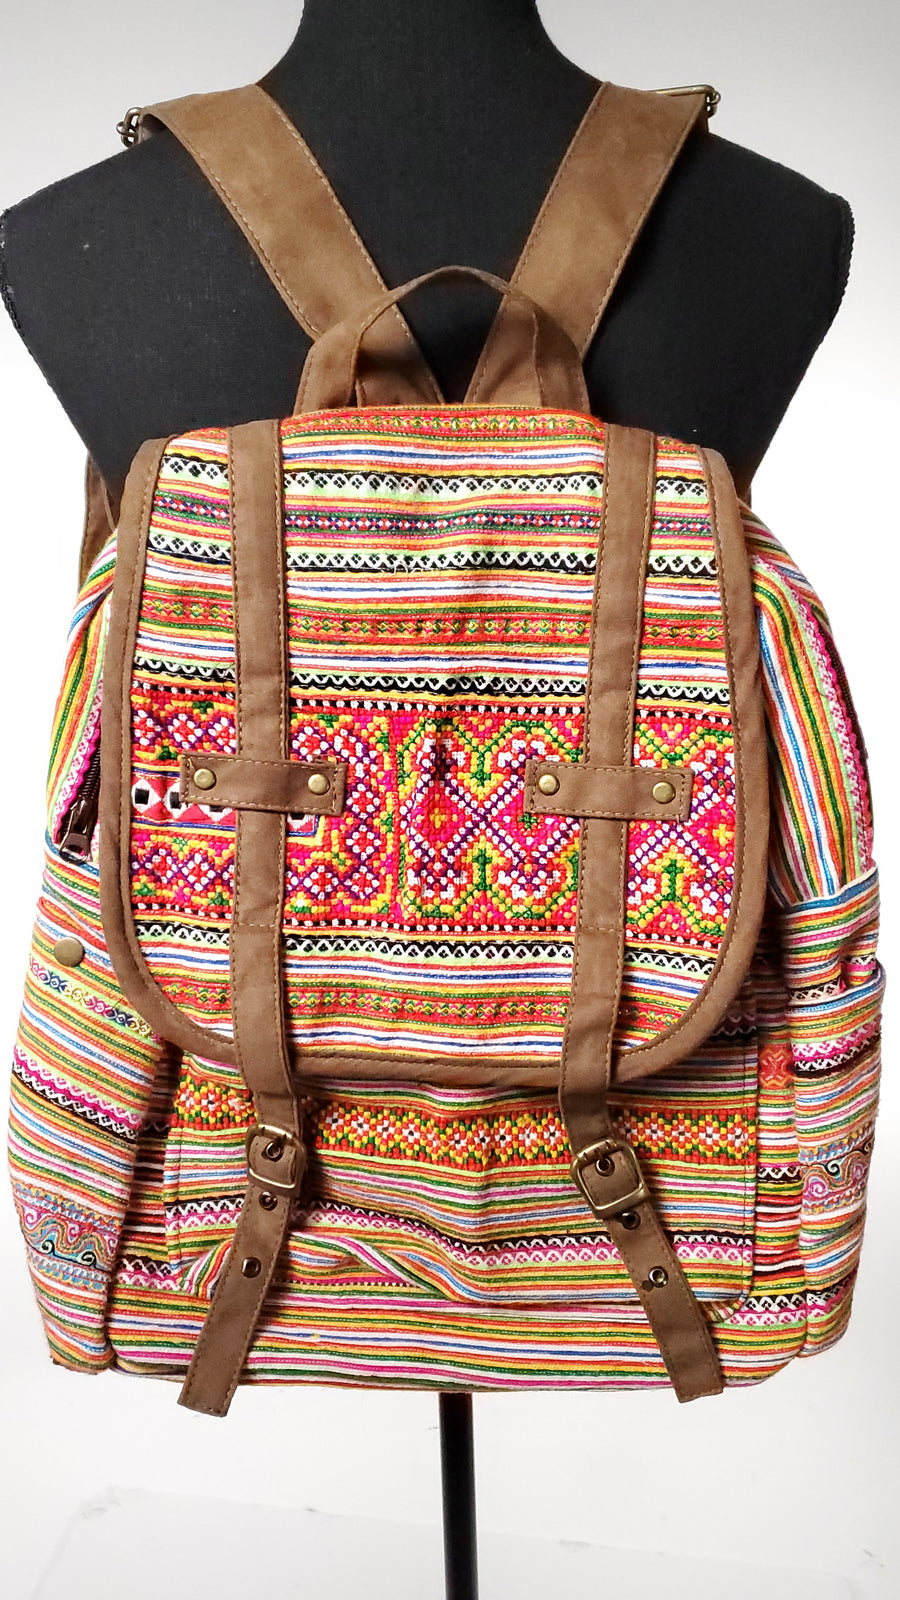 Tribal Back Pack-The High Thai-The High Thai-Yoga Pants-Harem Pants-Hippie Clothing-San Diego